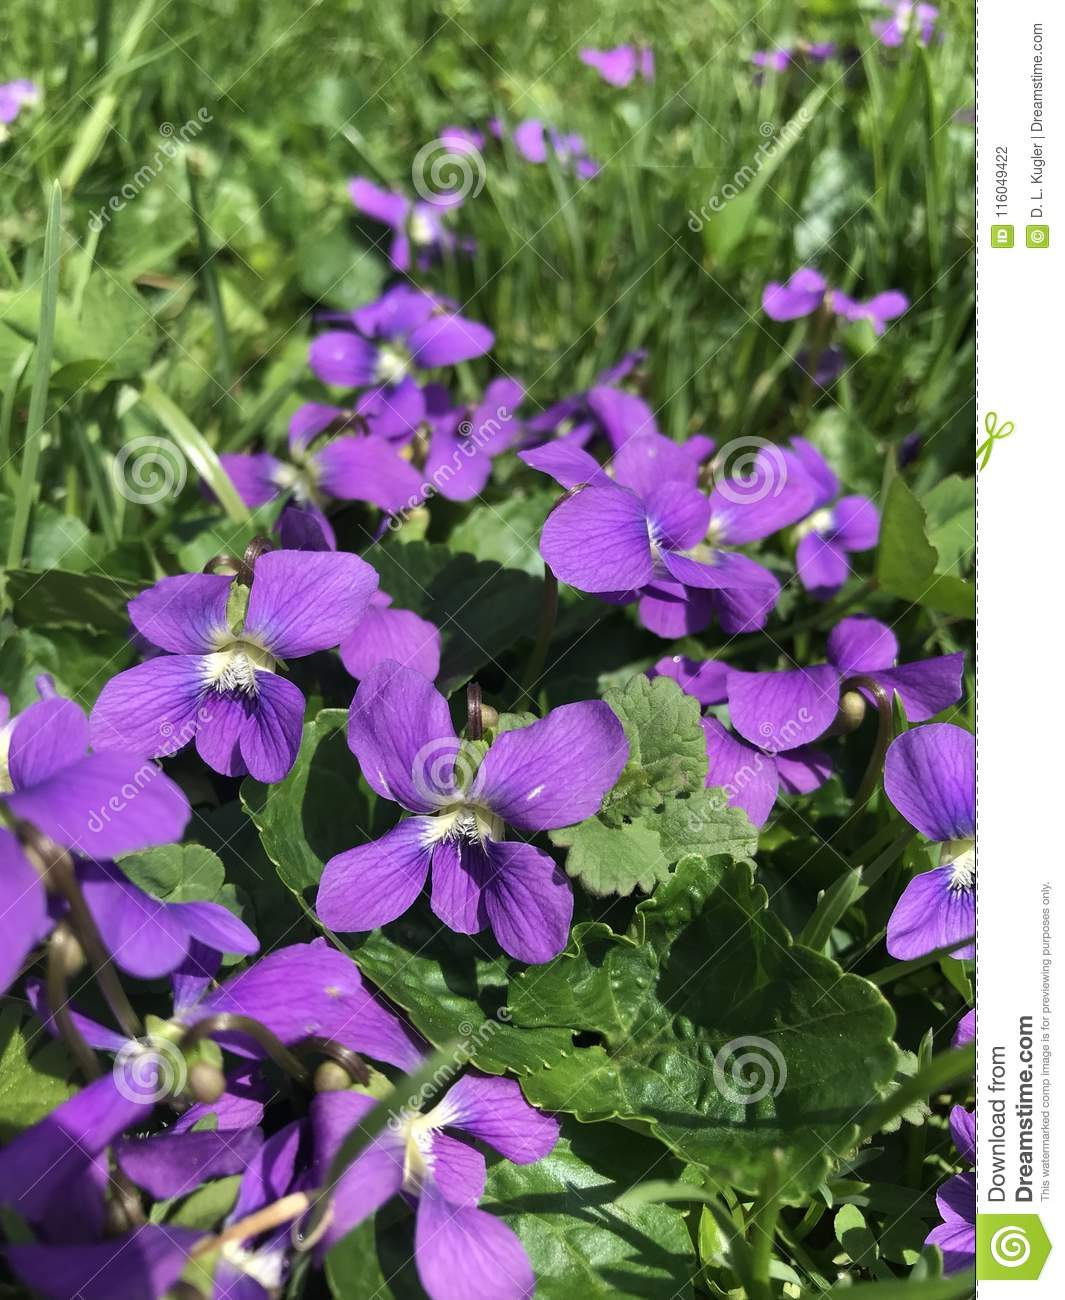 Little Violets In A Spring Lawn Weed Or Wildflower Friend Or Foe